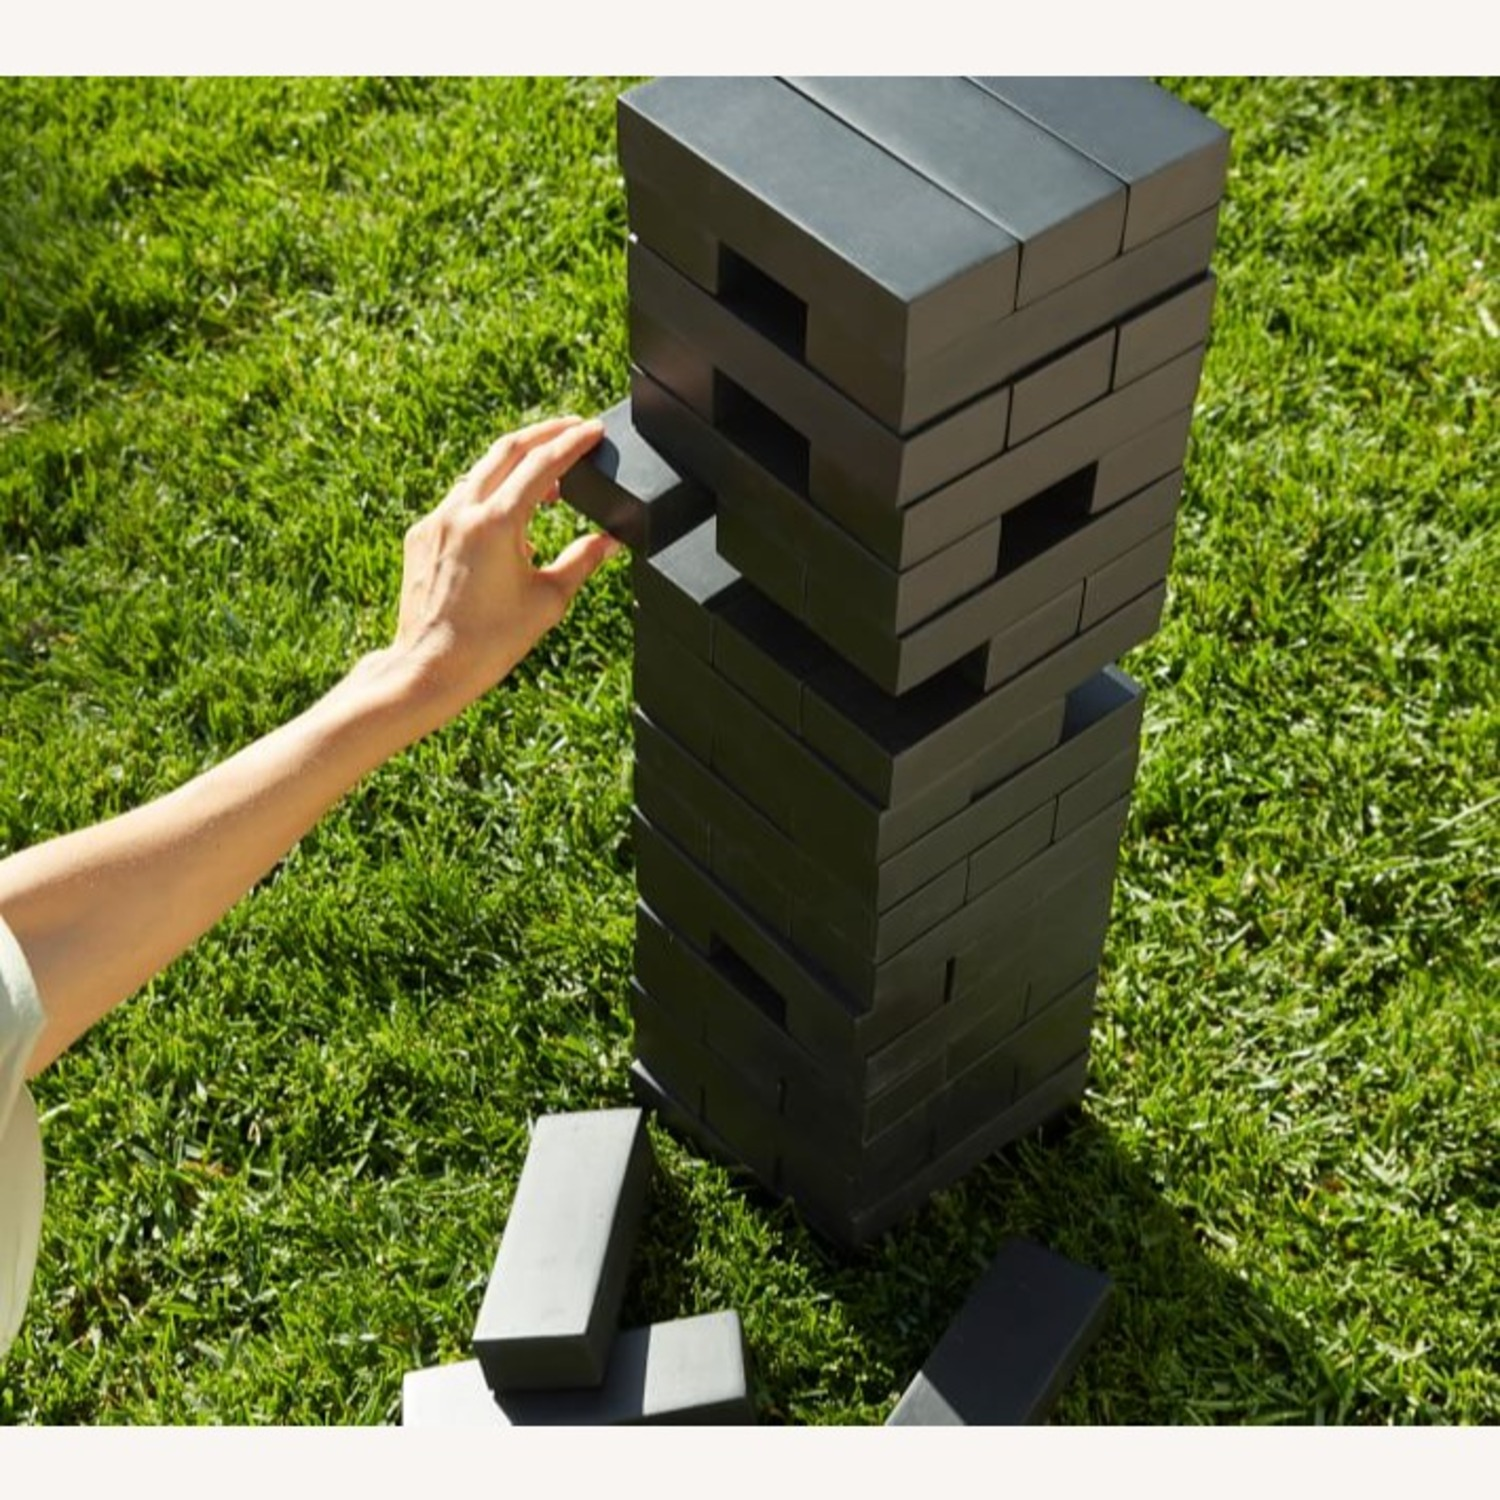 Pottery Barn Outdoor Xl Tumbling Tower,Black - image-2